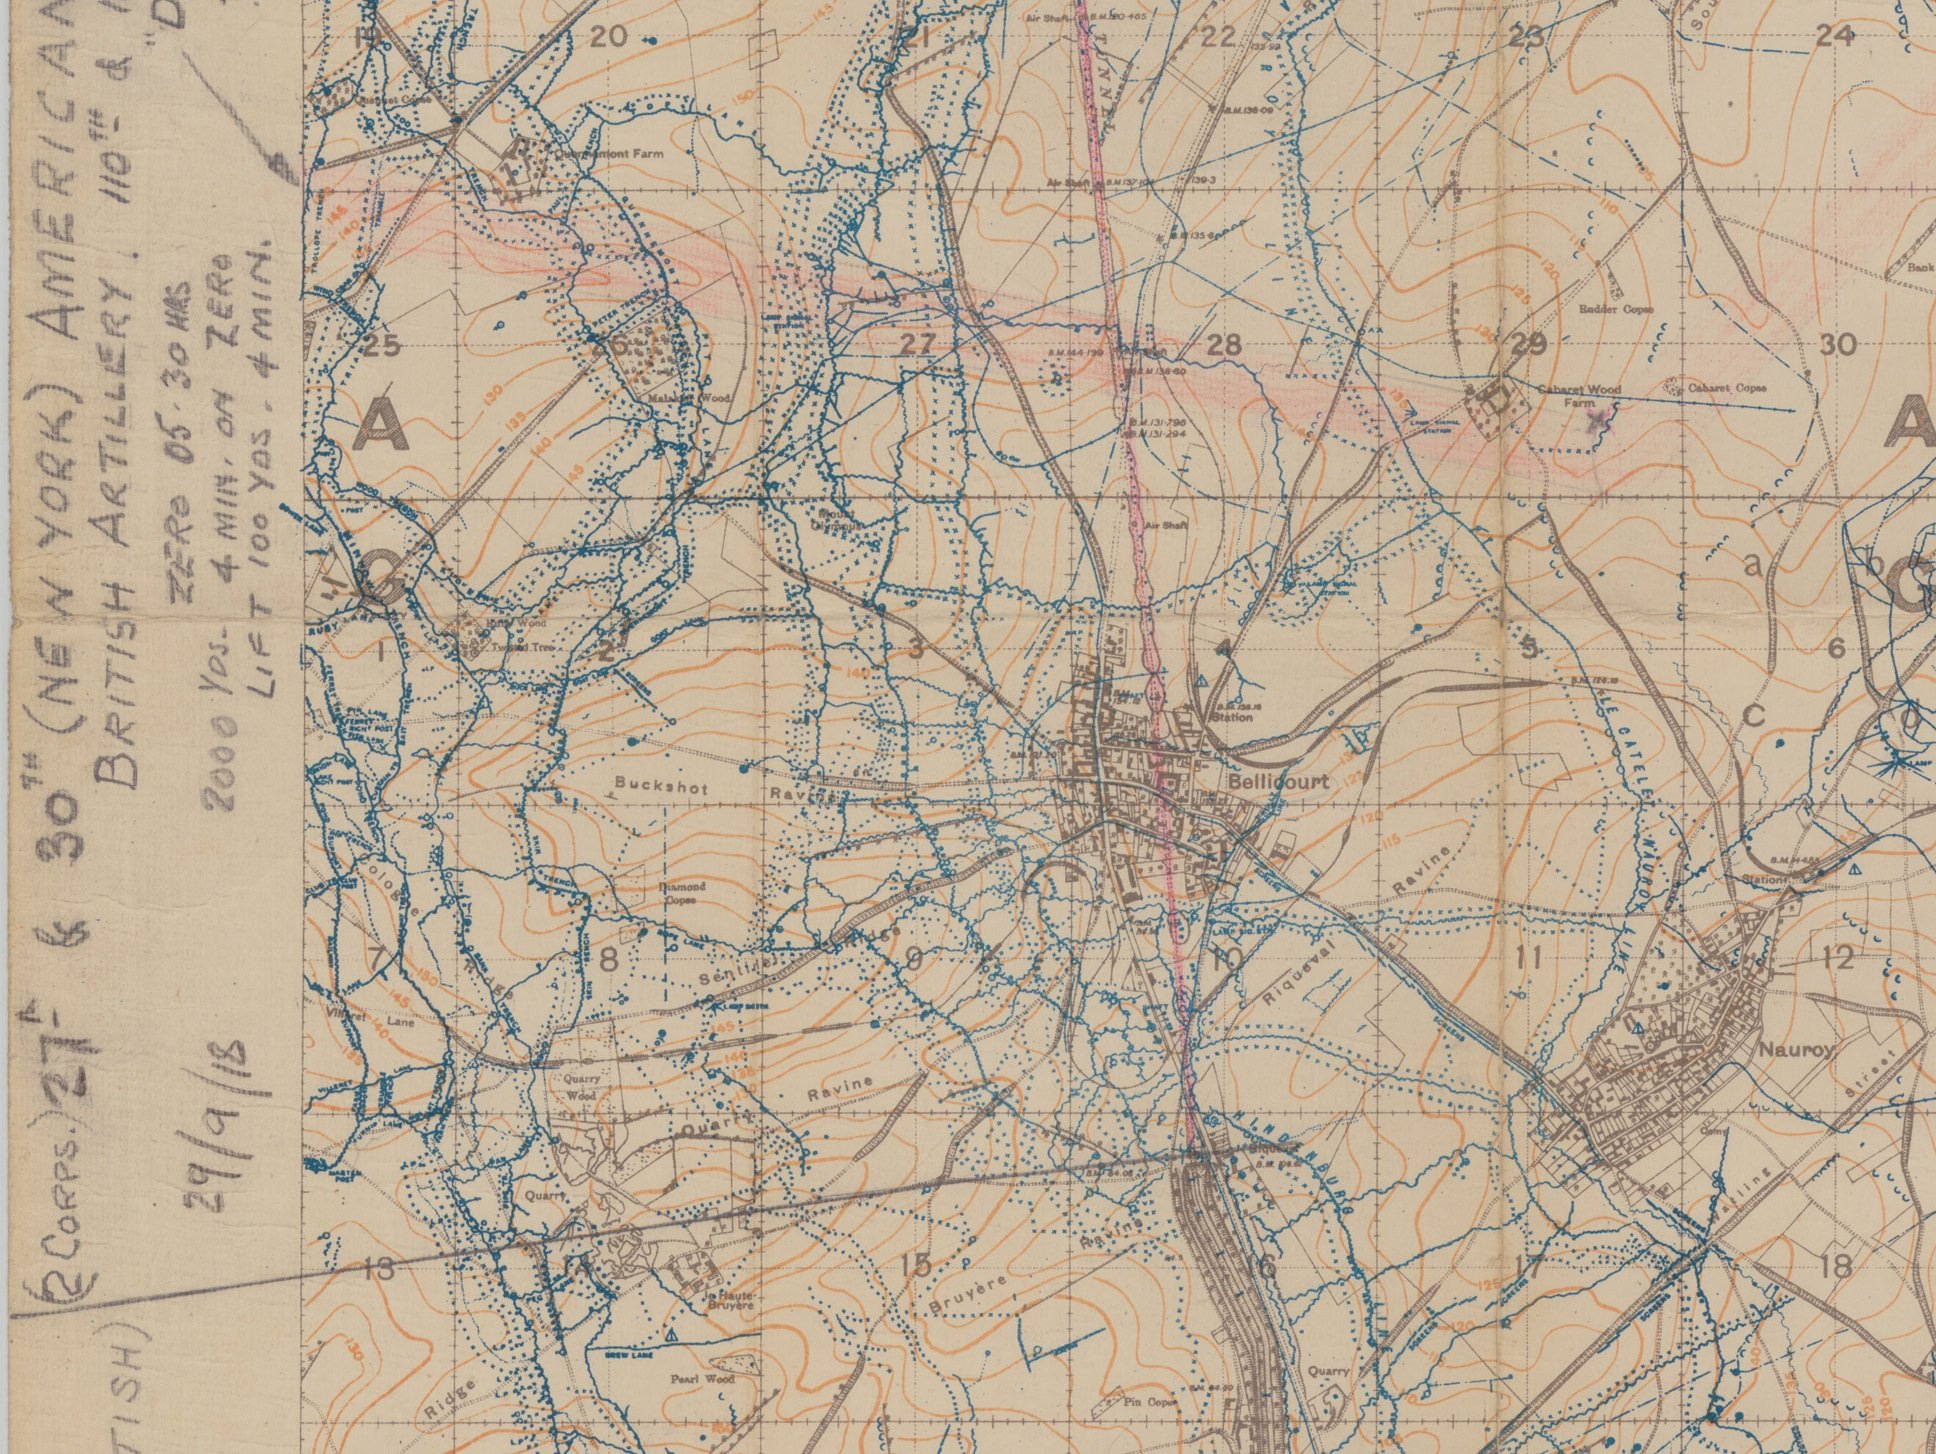 TRENCH MAP OF ST QUENTIN